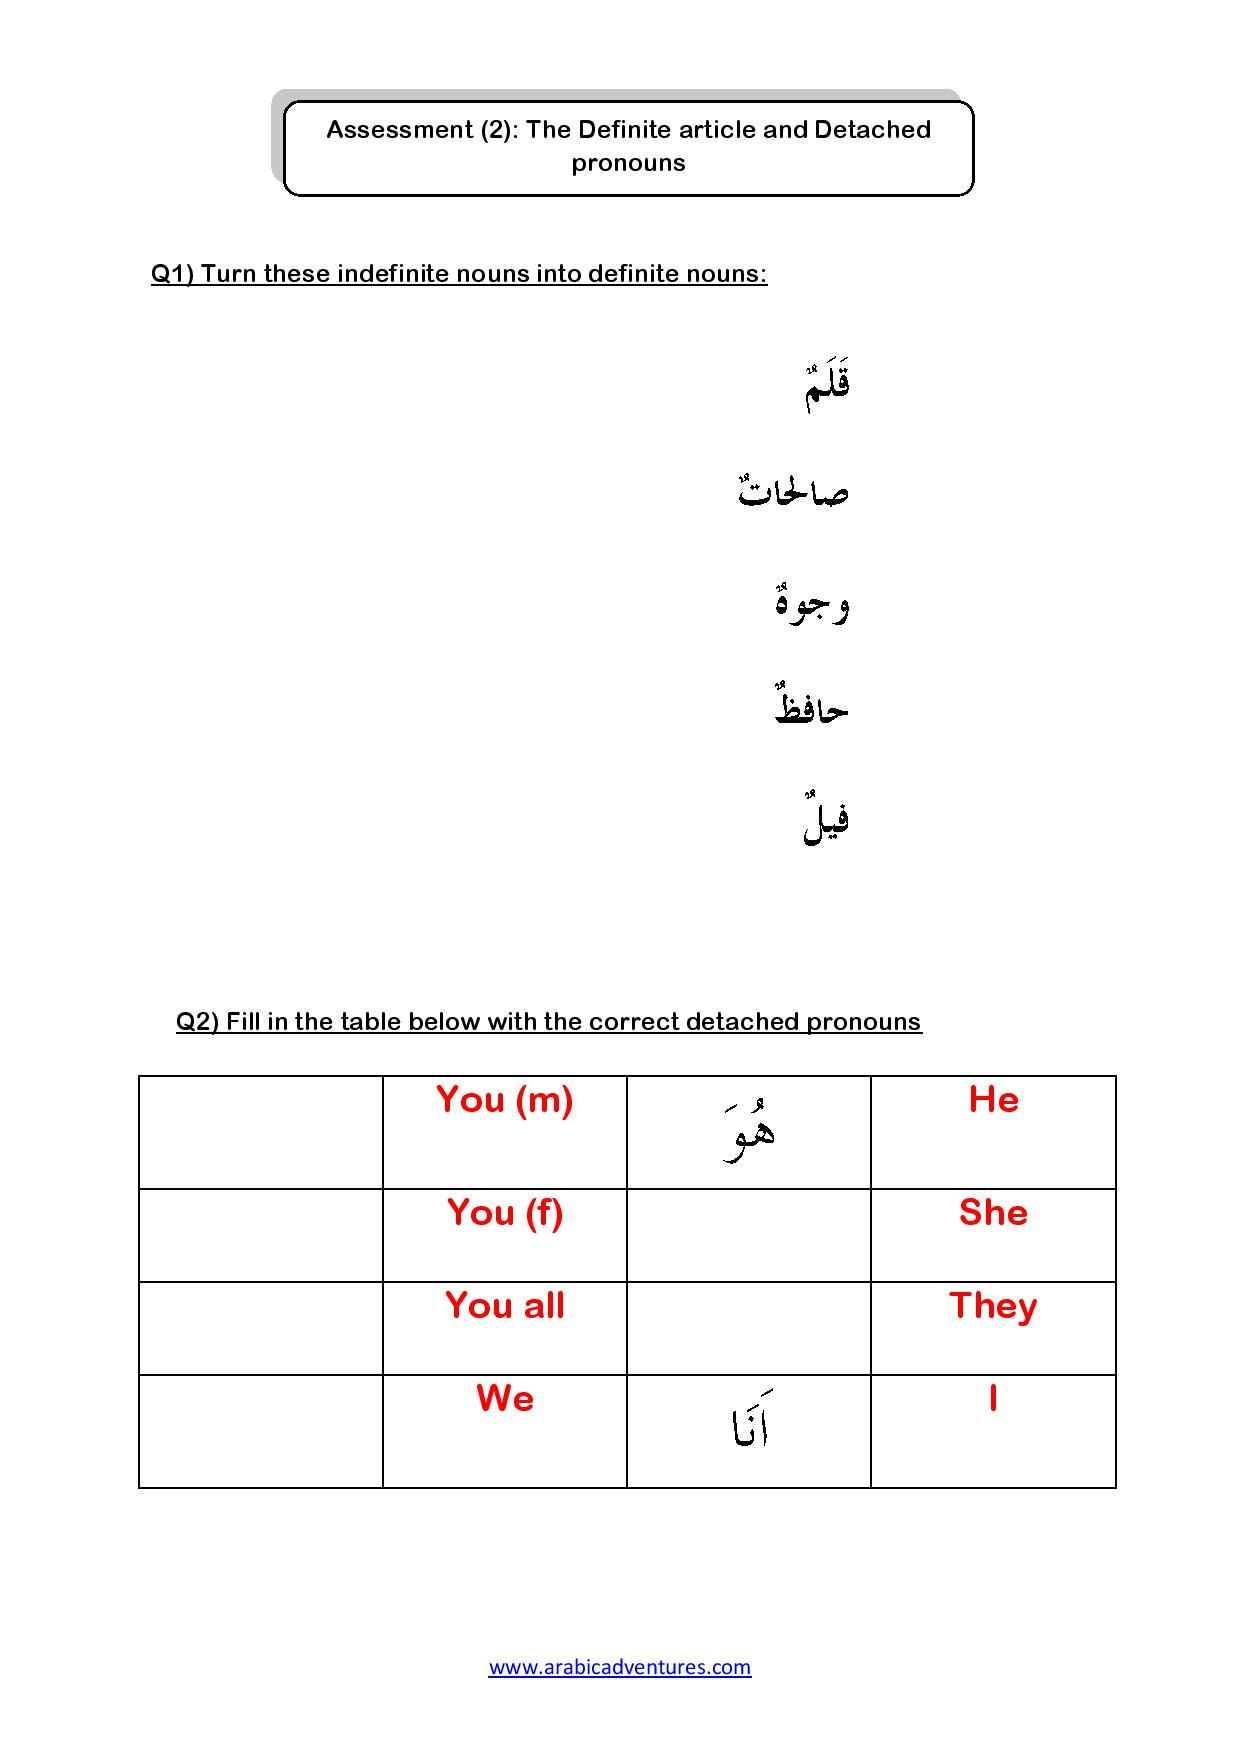 Arabic Grammar Assessment On The Definite Article And Detached Pronouns Get The Free Printable